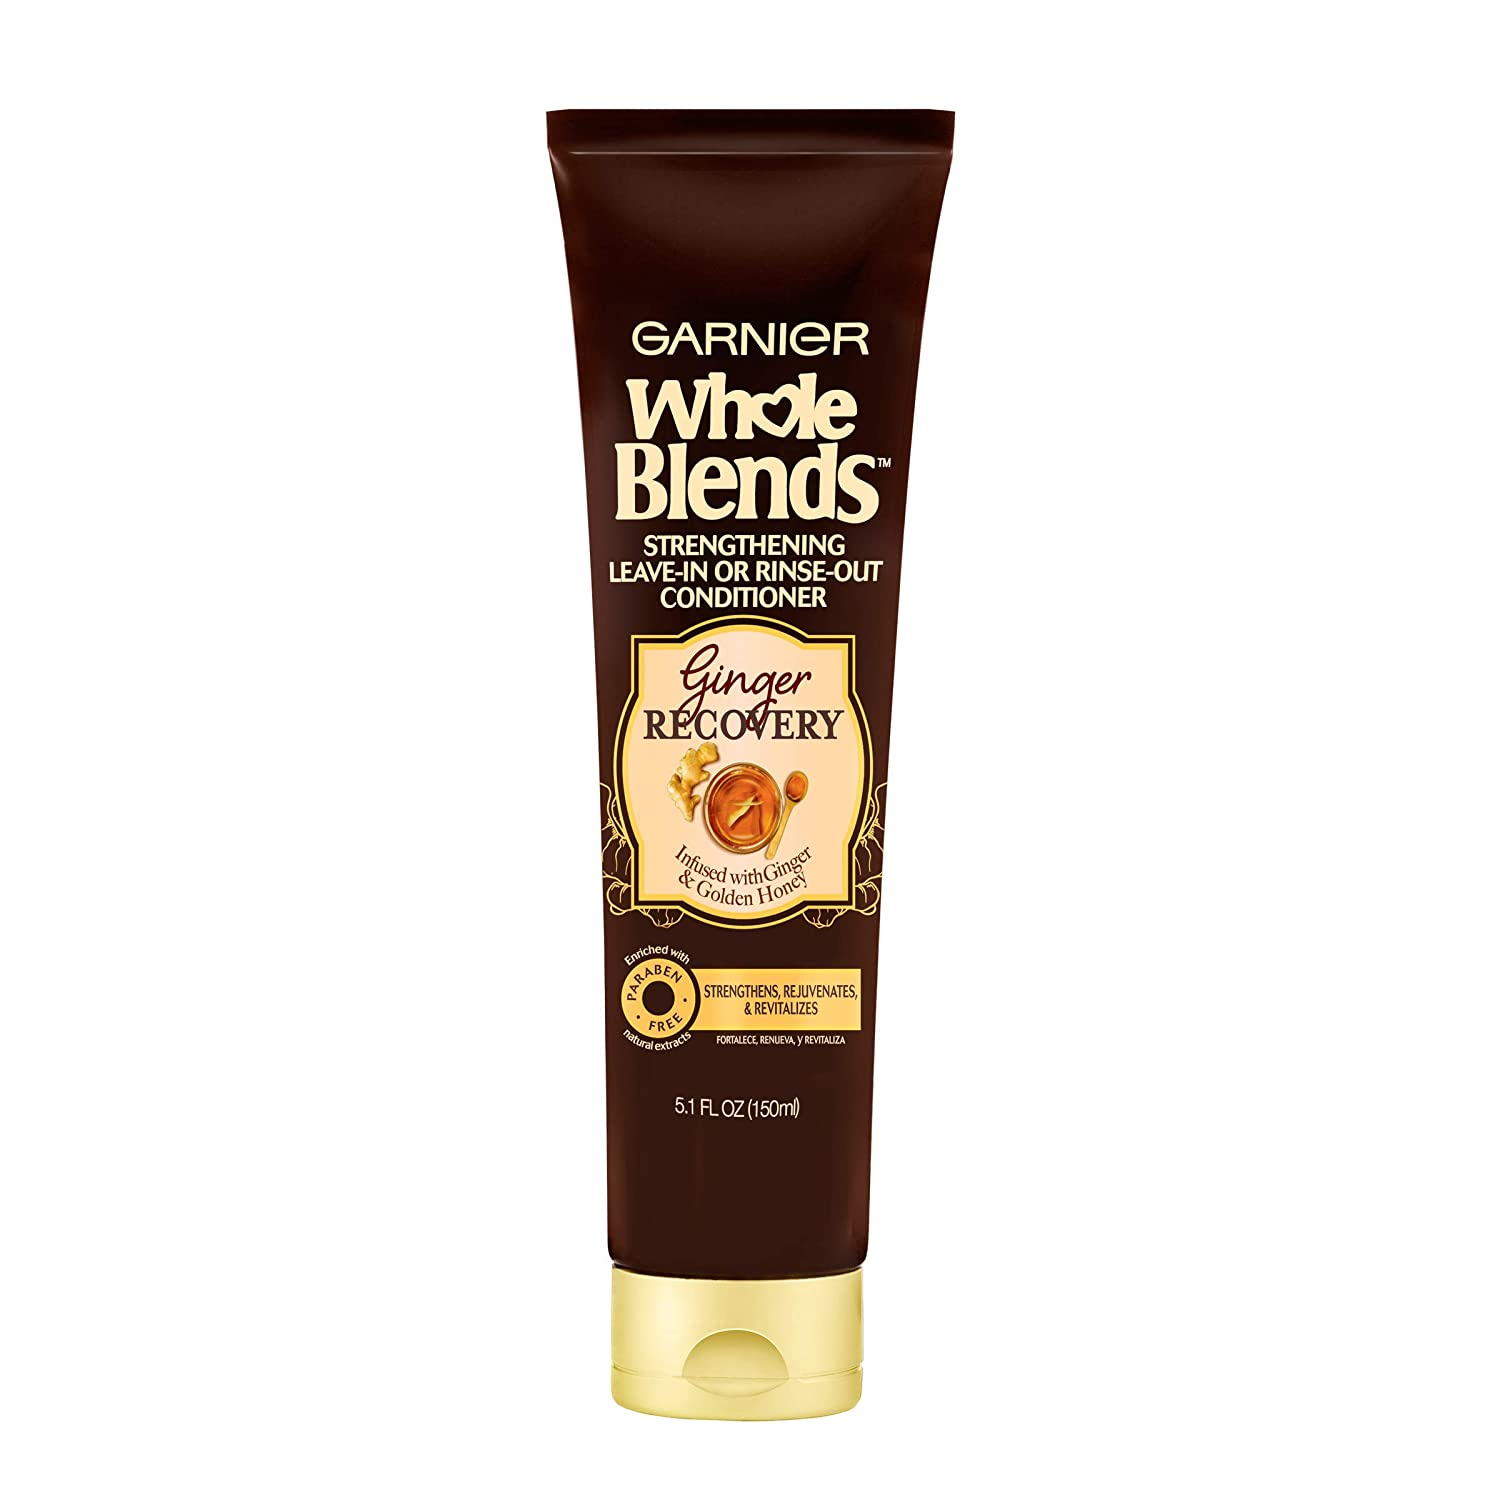 Garnier Hair Care Whole Blends Ginger Recovery Leave-in or Rinse-out Treatment, 5.1 Fl Oz